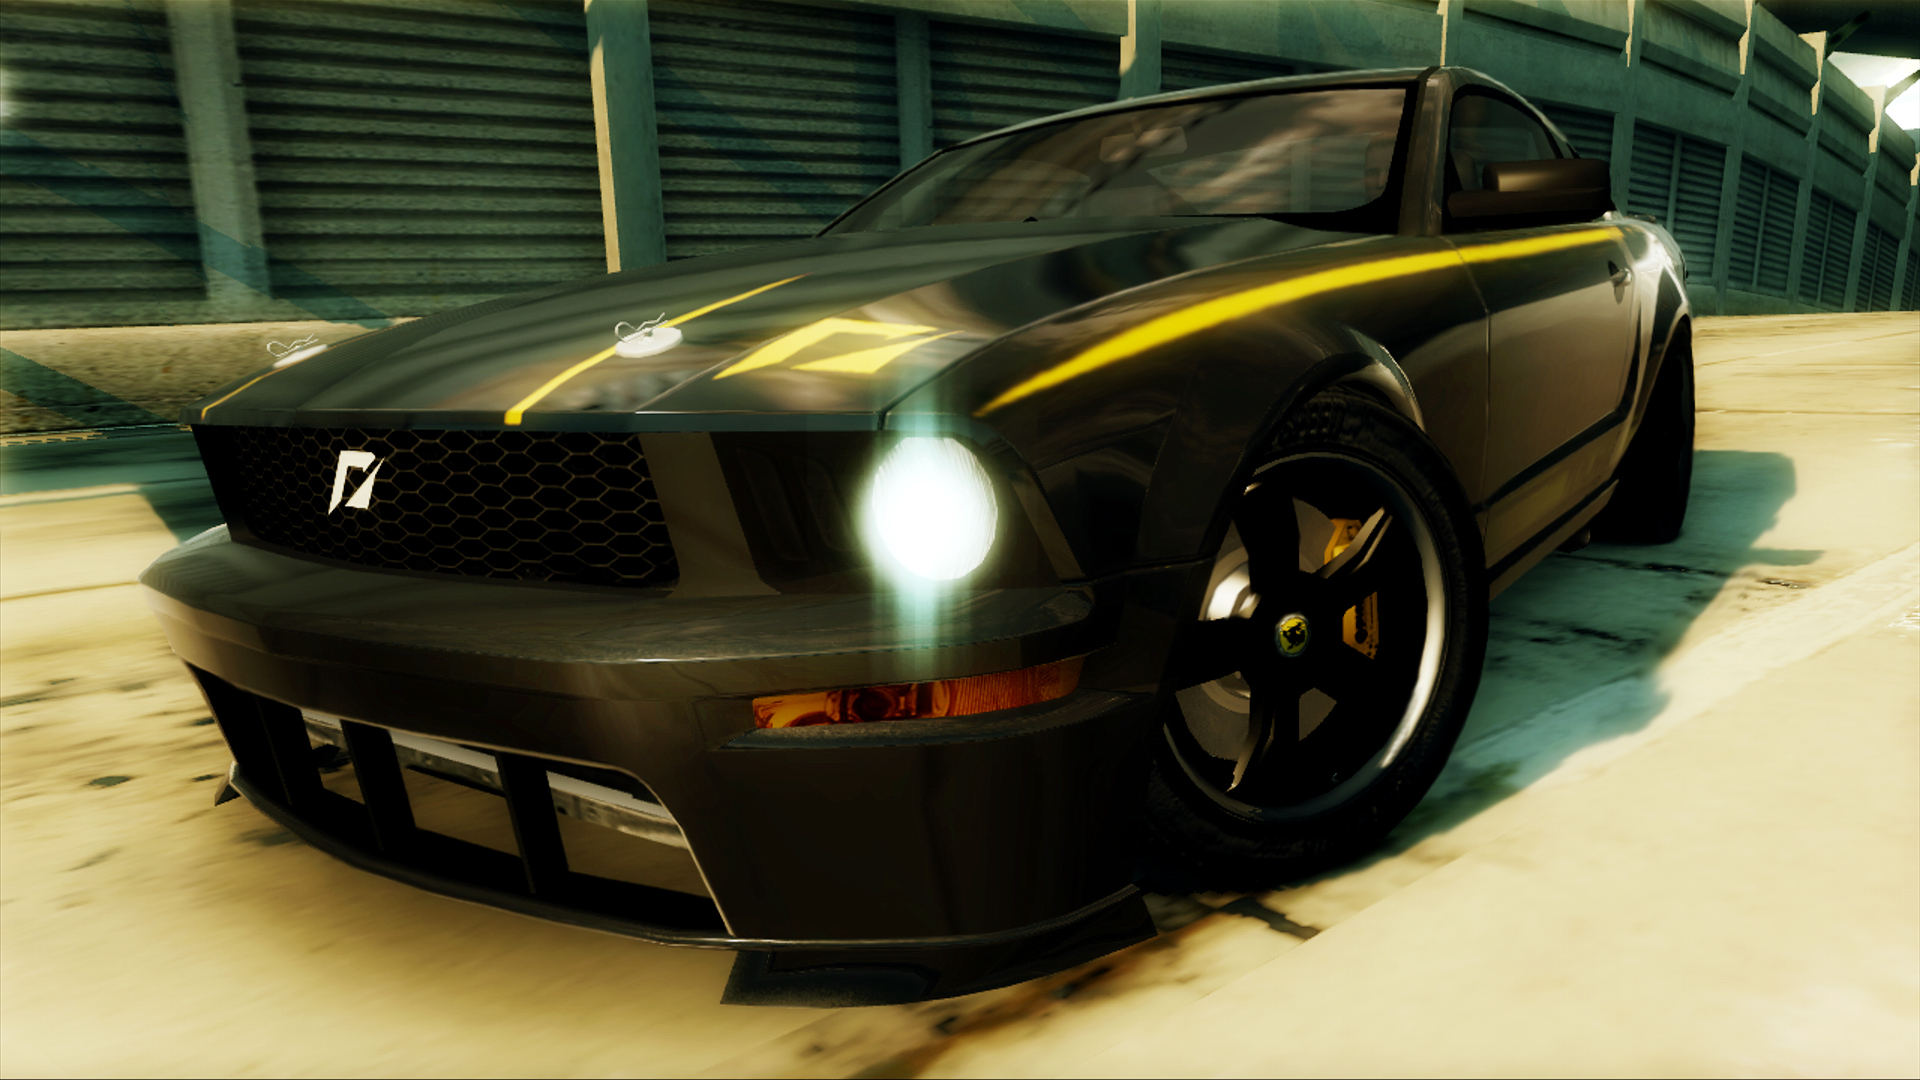 Ford Shelby Terlingua Mustang Need For Speed Wiki Fandom